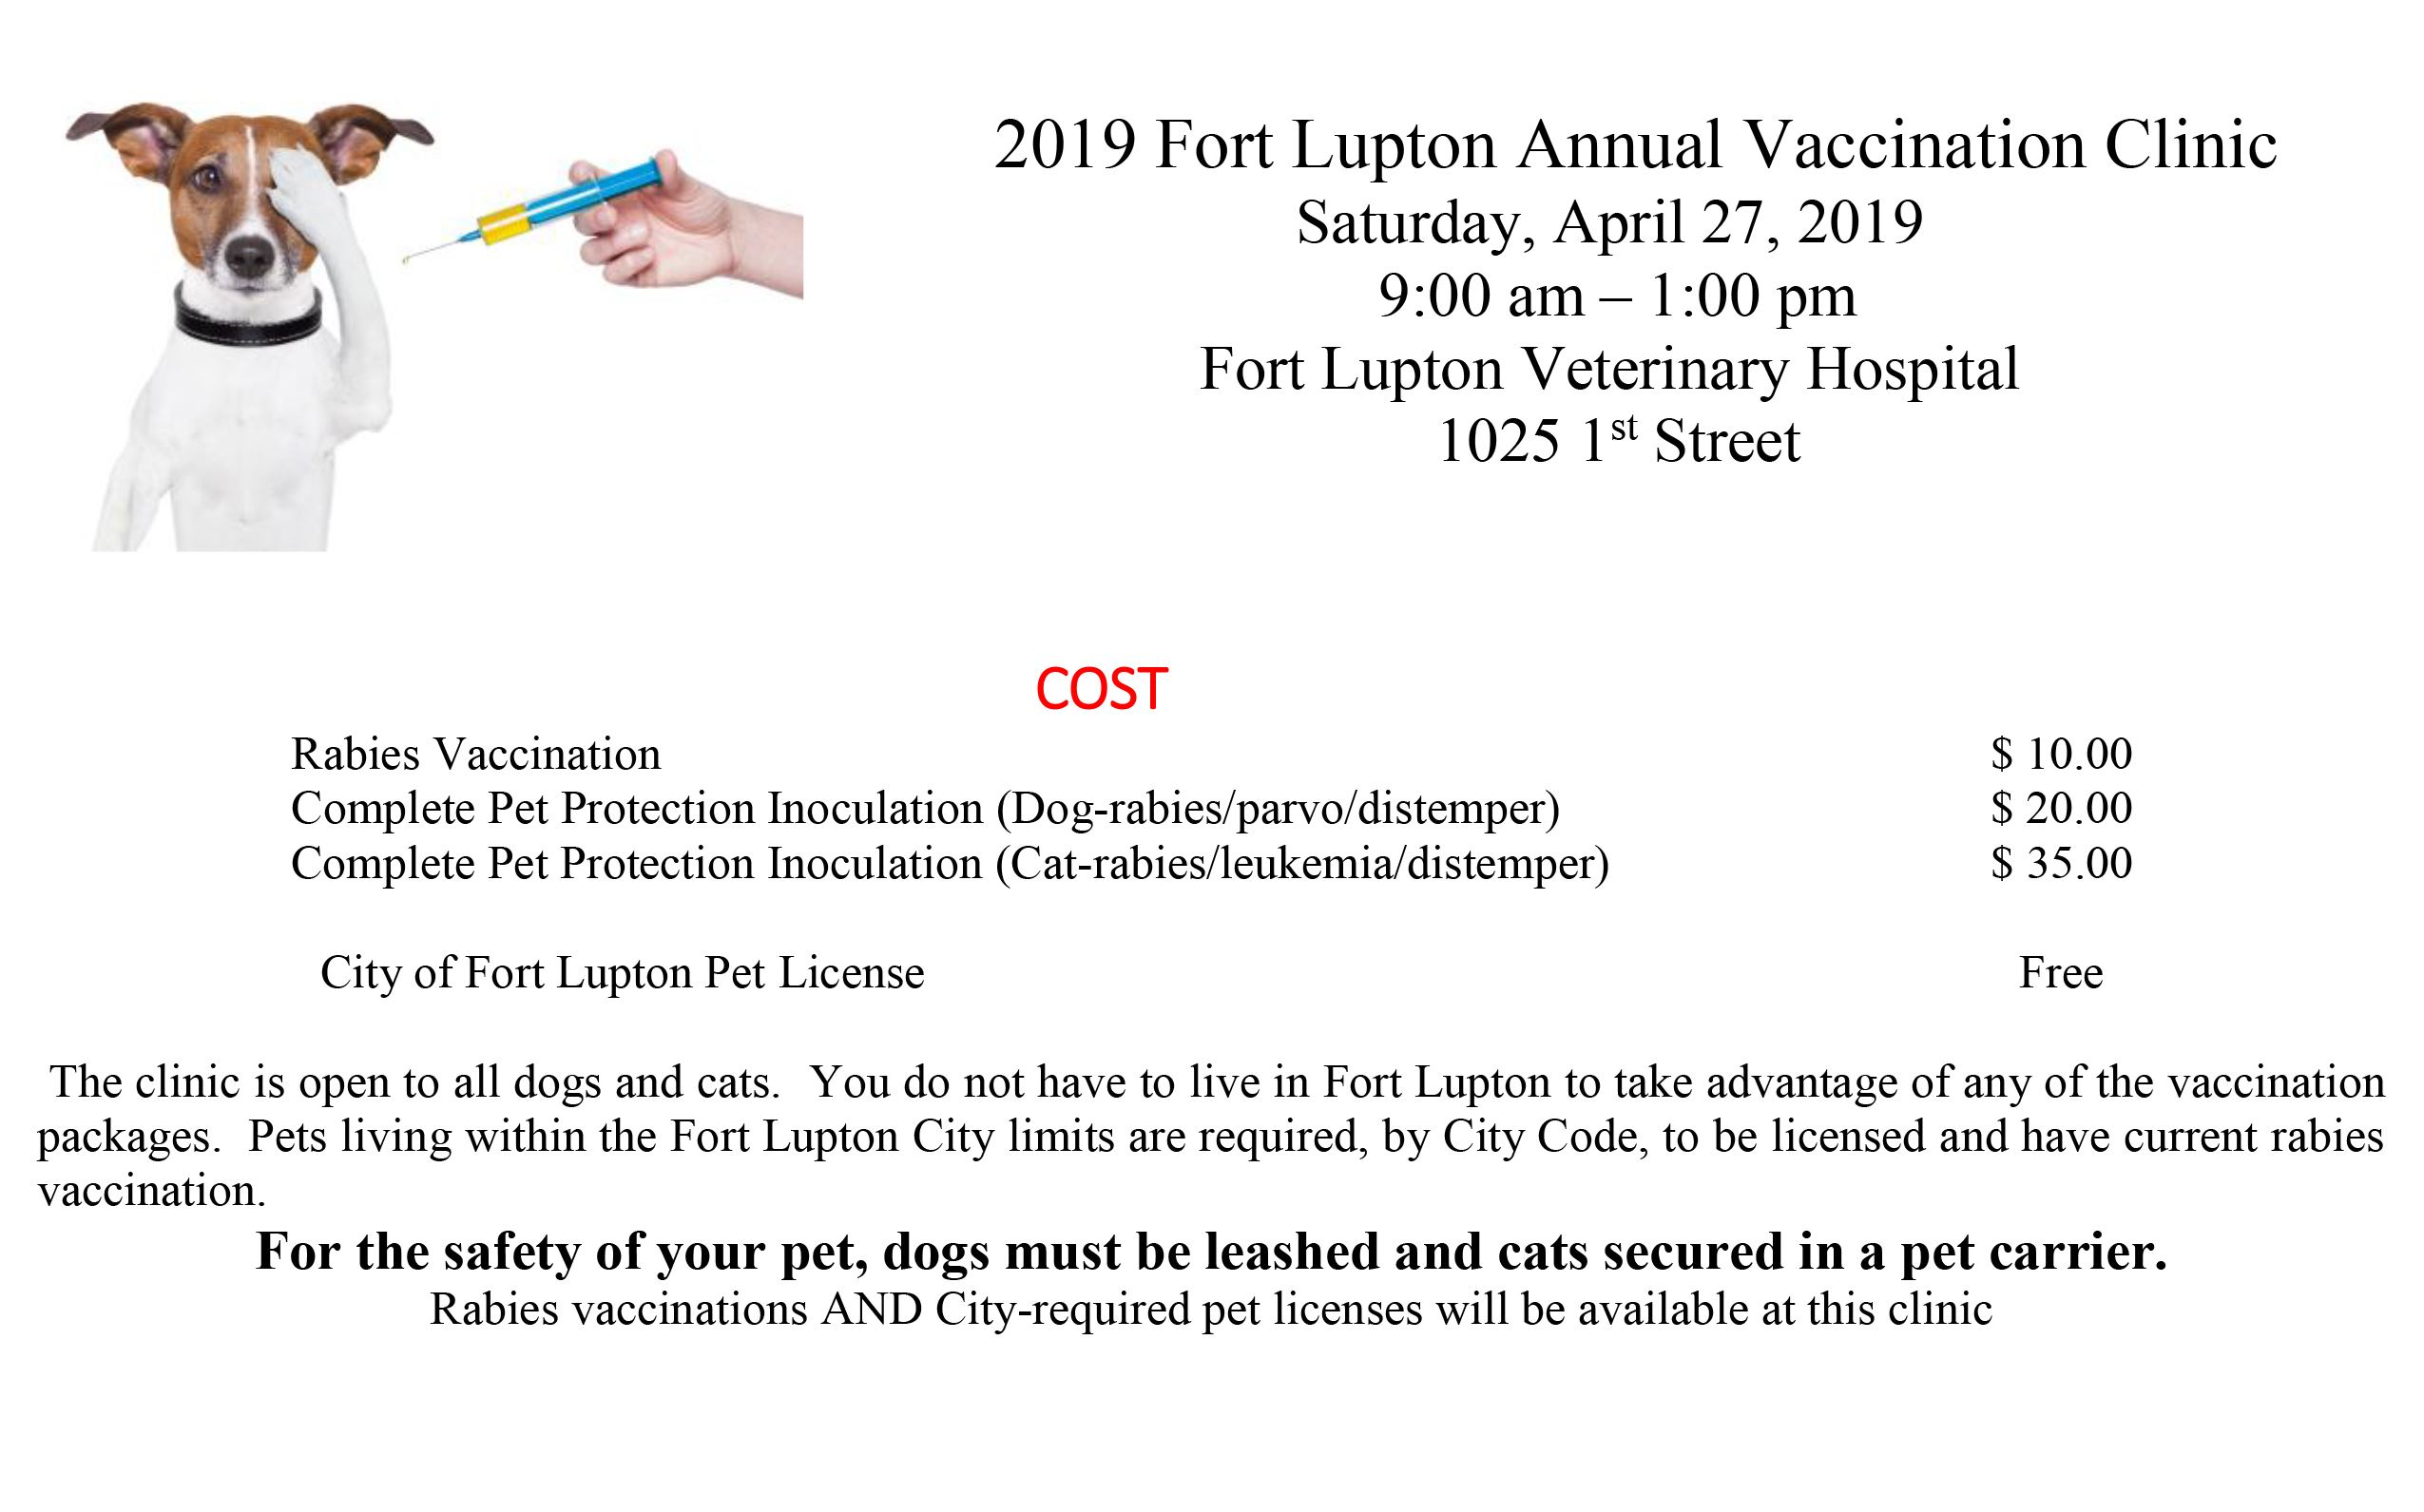 2019 Fort Lupton Annual Vaccination Clinic new one 1up